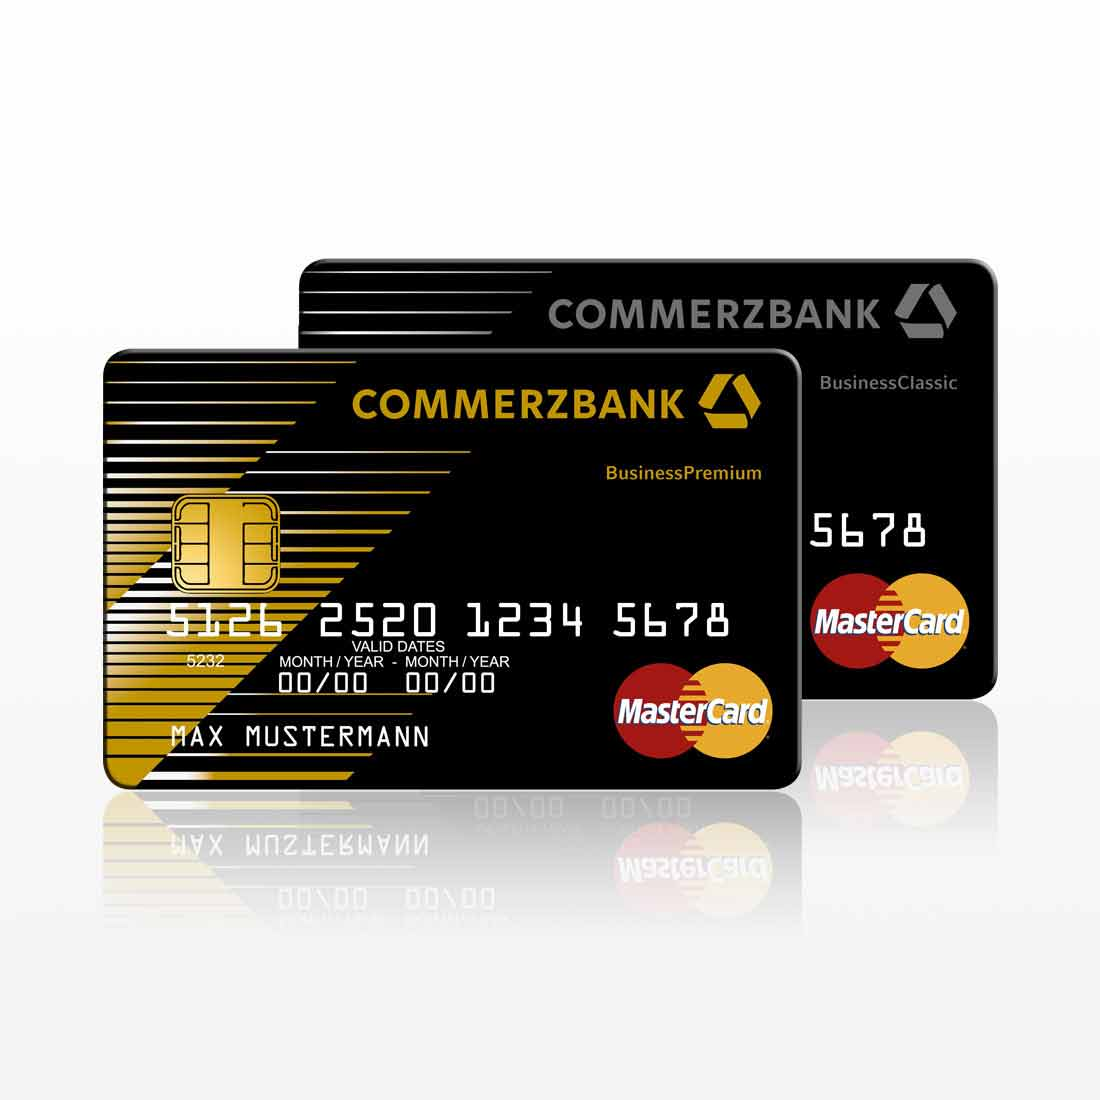 Business card premium commerzbank image collections card design business card premium commerzbank image collections card design business card premium commerzbank image collections card design reheart Image collections